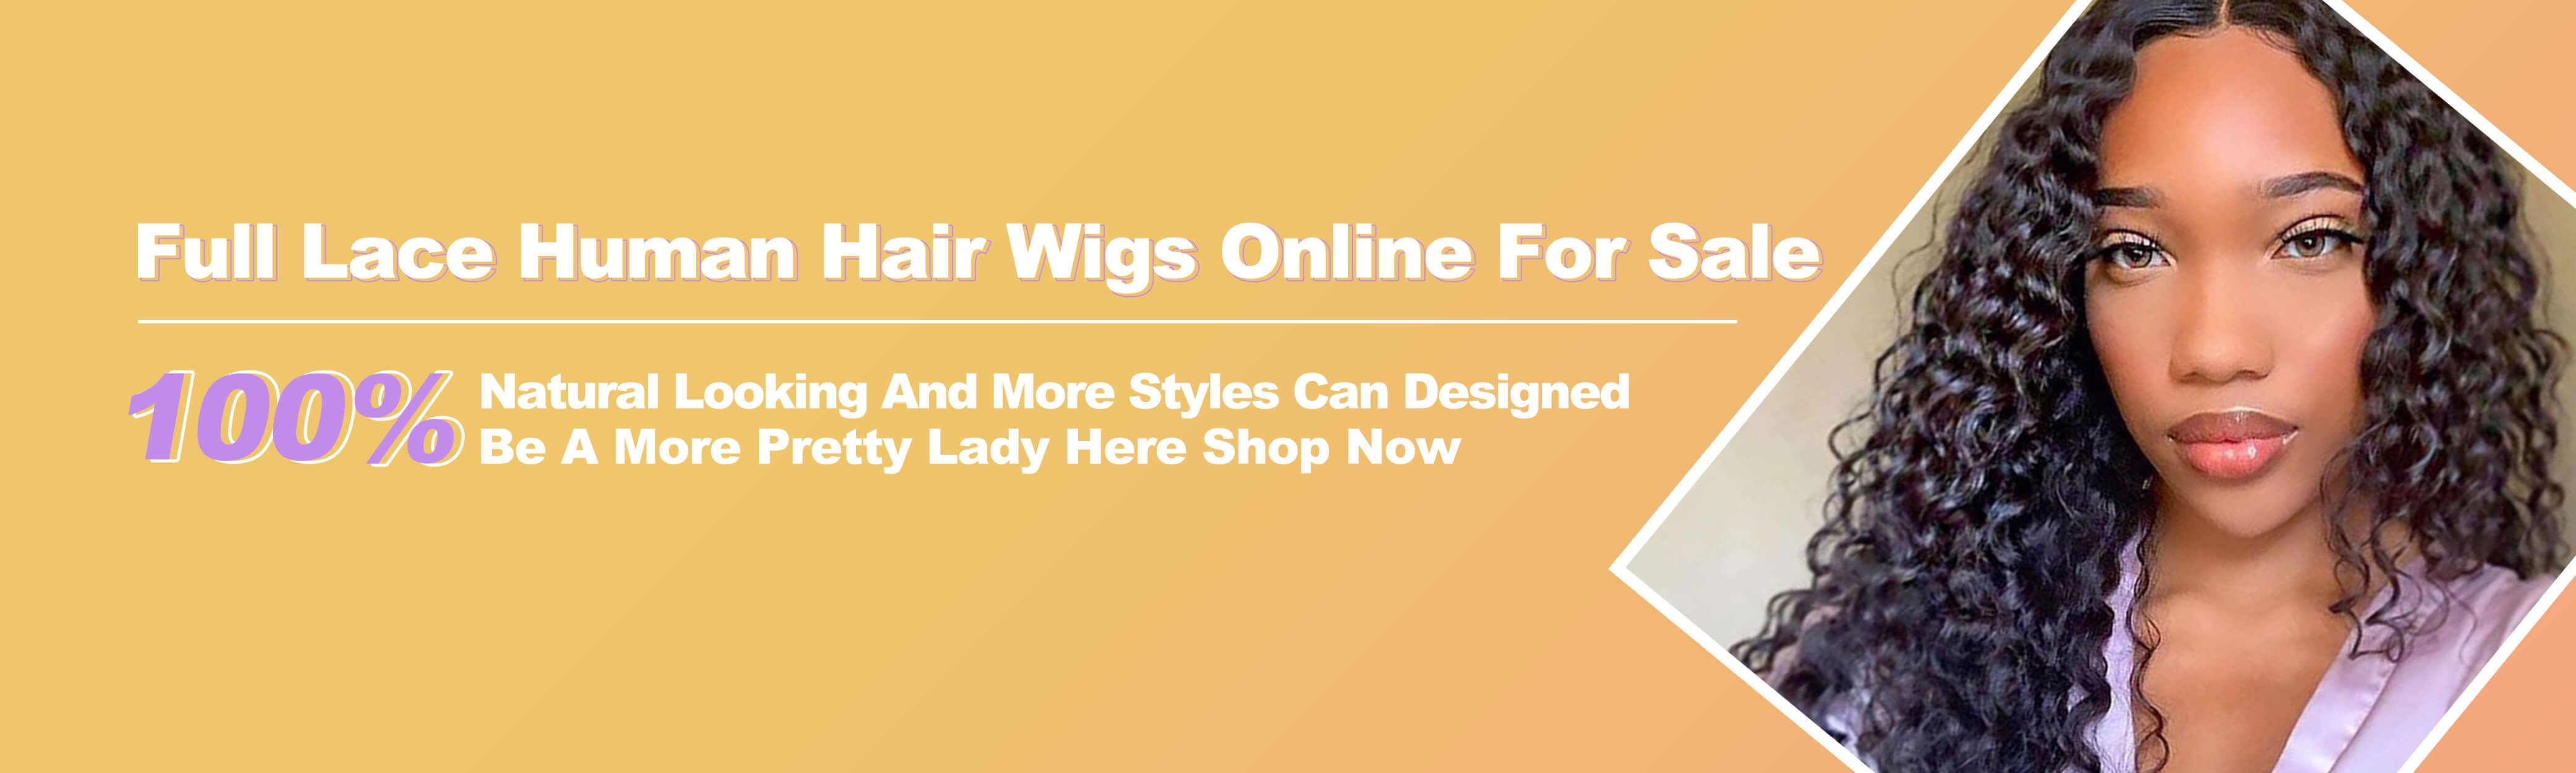 full lace wigs for women online sale now